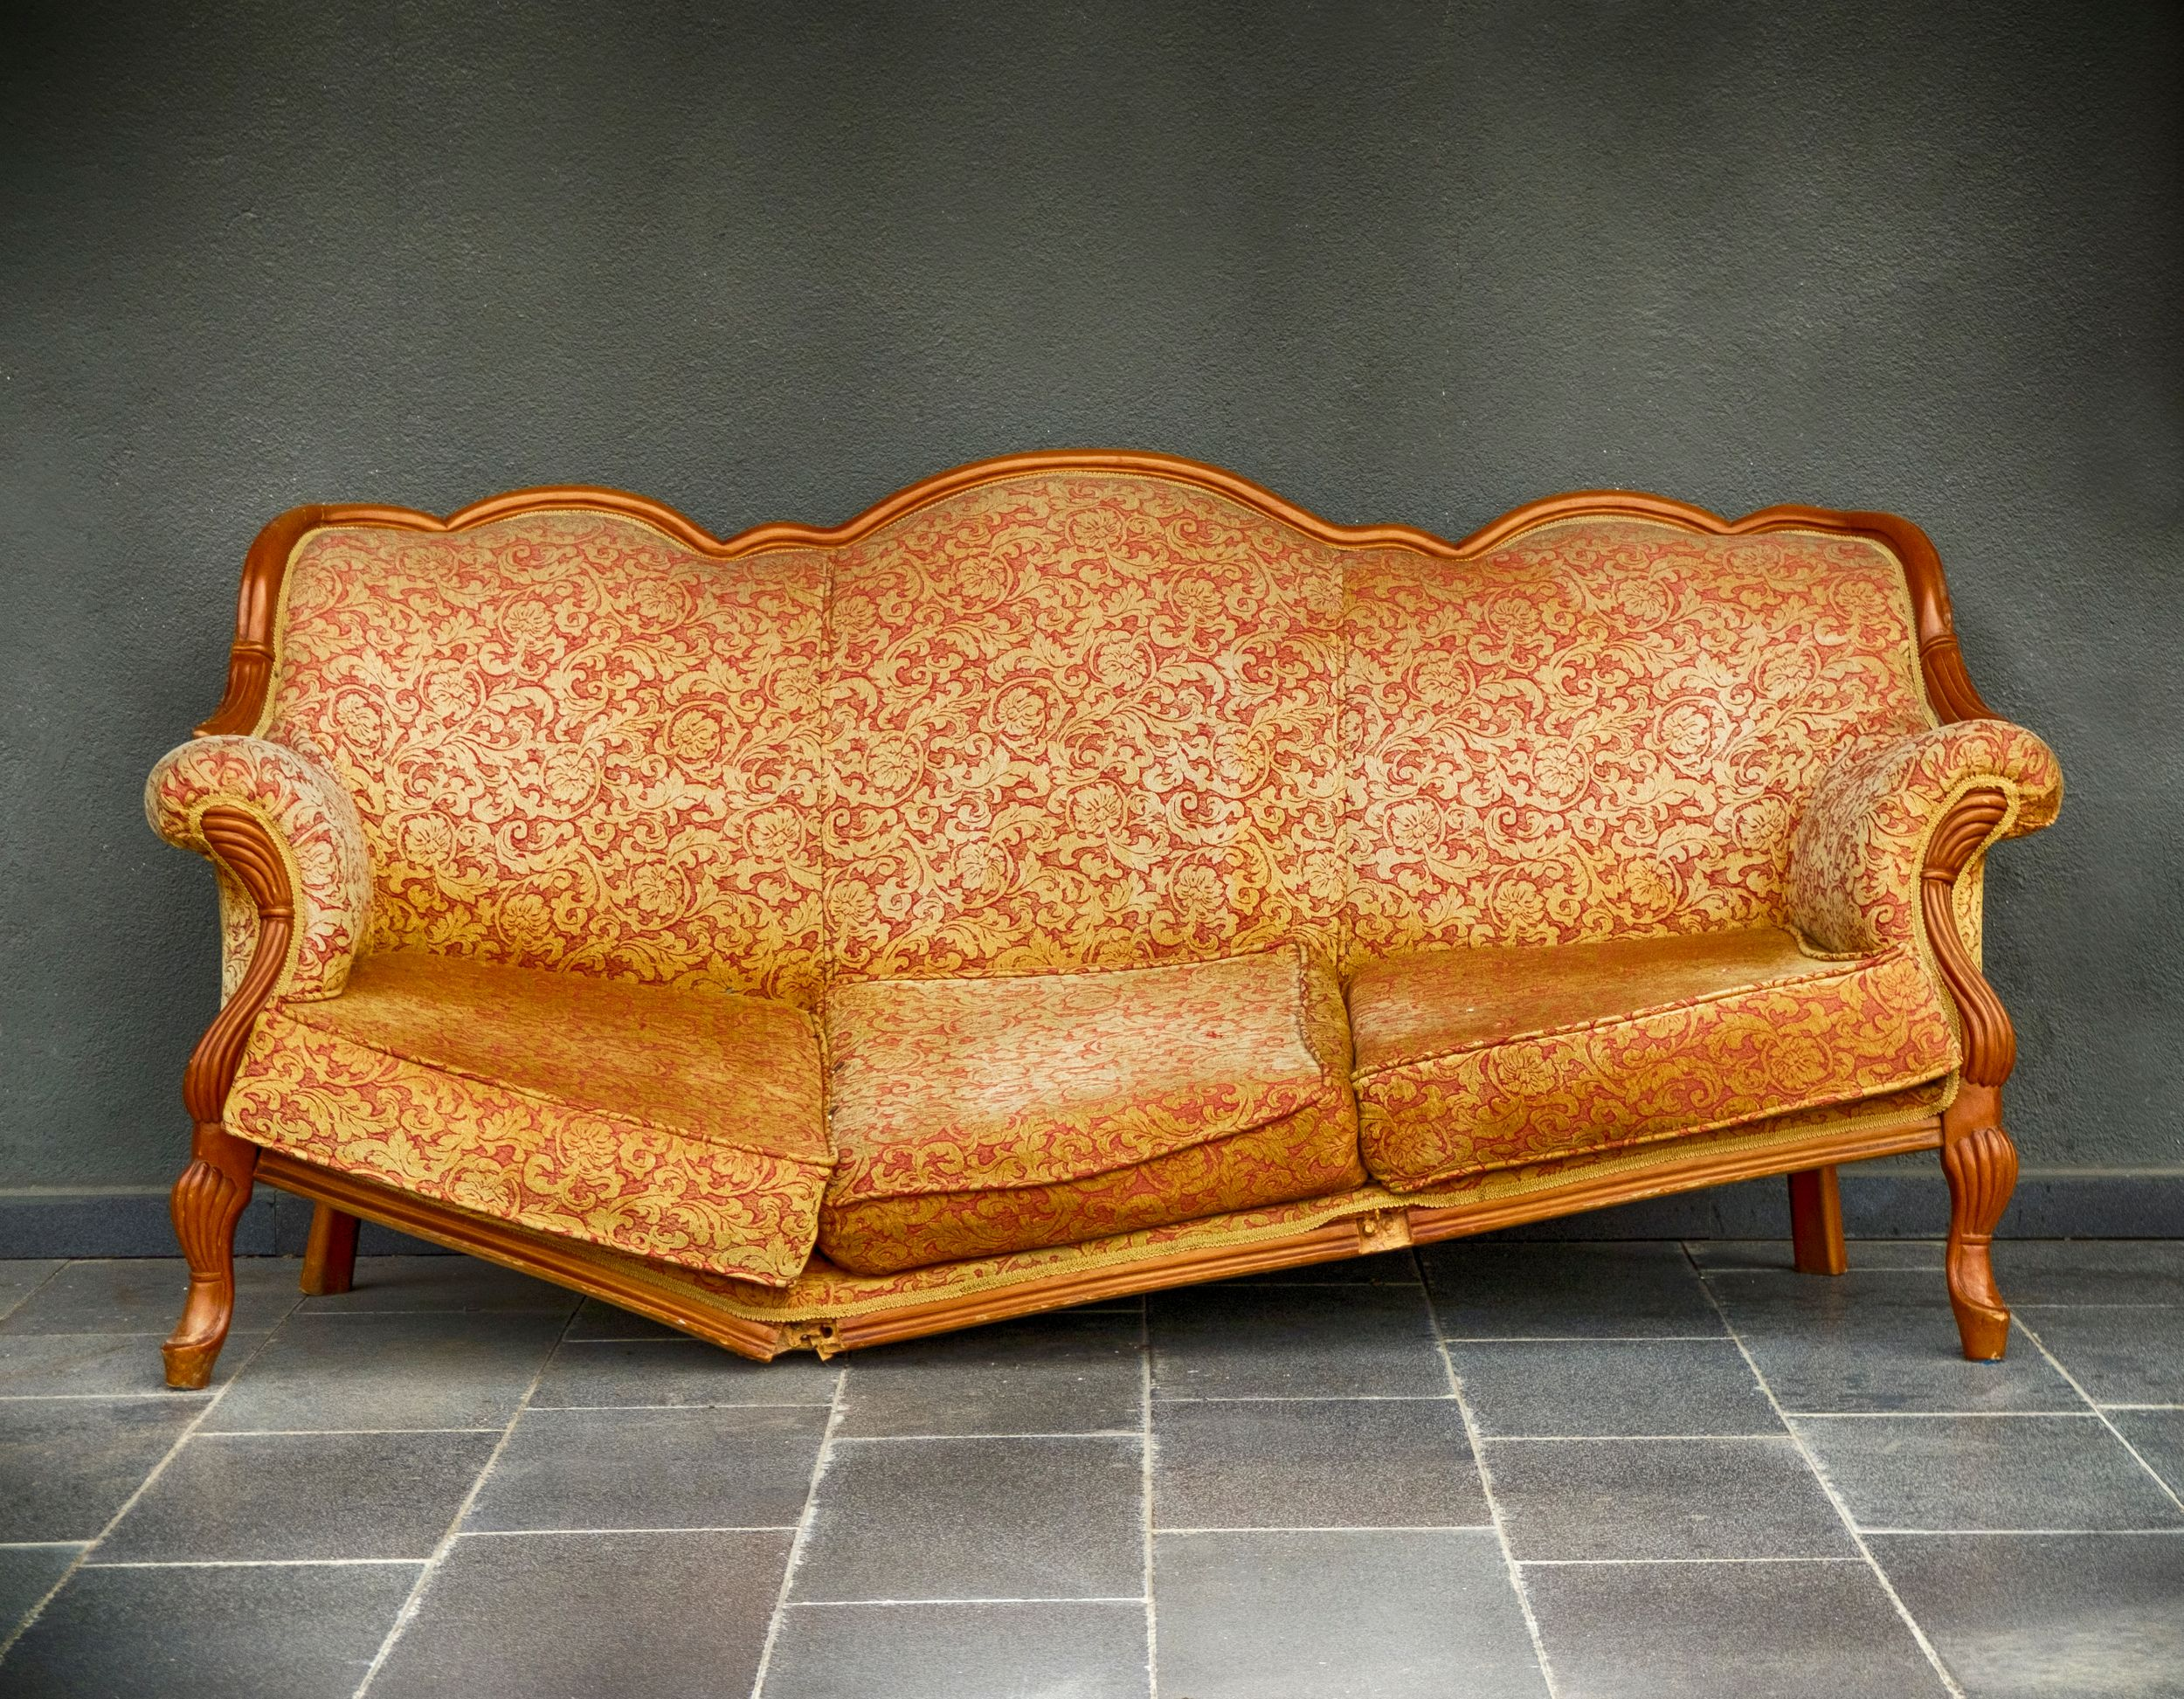 Broken orange couch - purchase a furniture protection plan